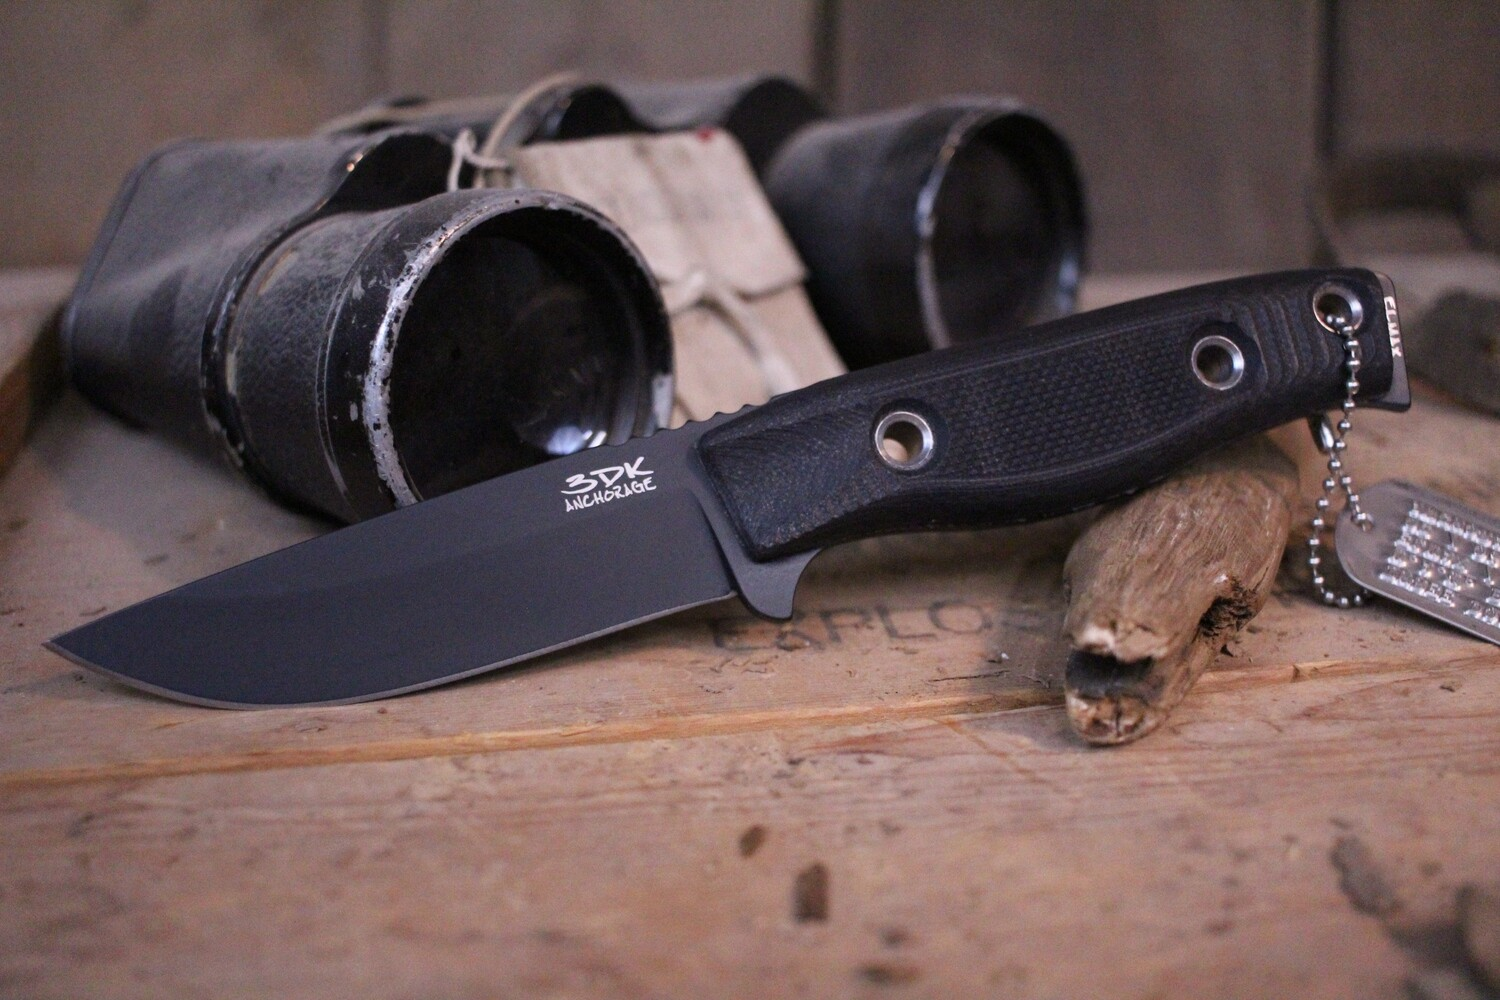 "3DK MAK 4"" Fixed Drop Point, Black Cerakote N690 Blade / Black G10 Handle"